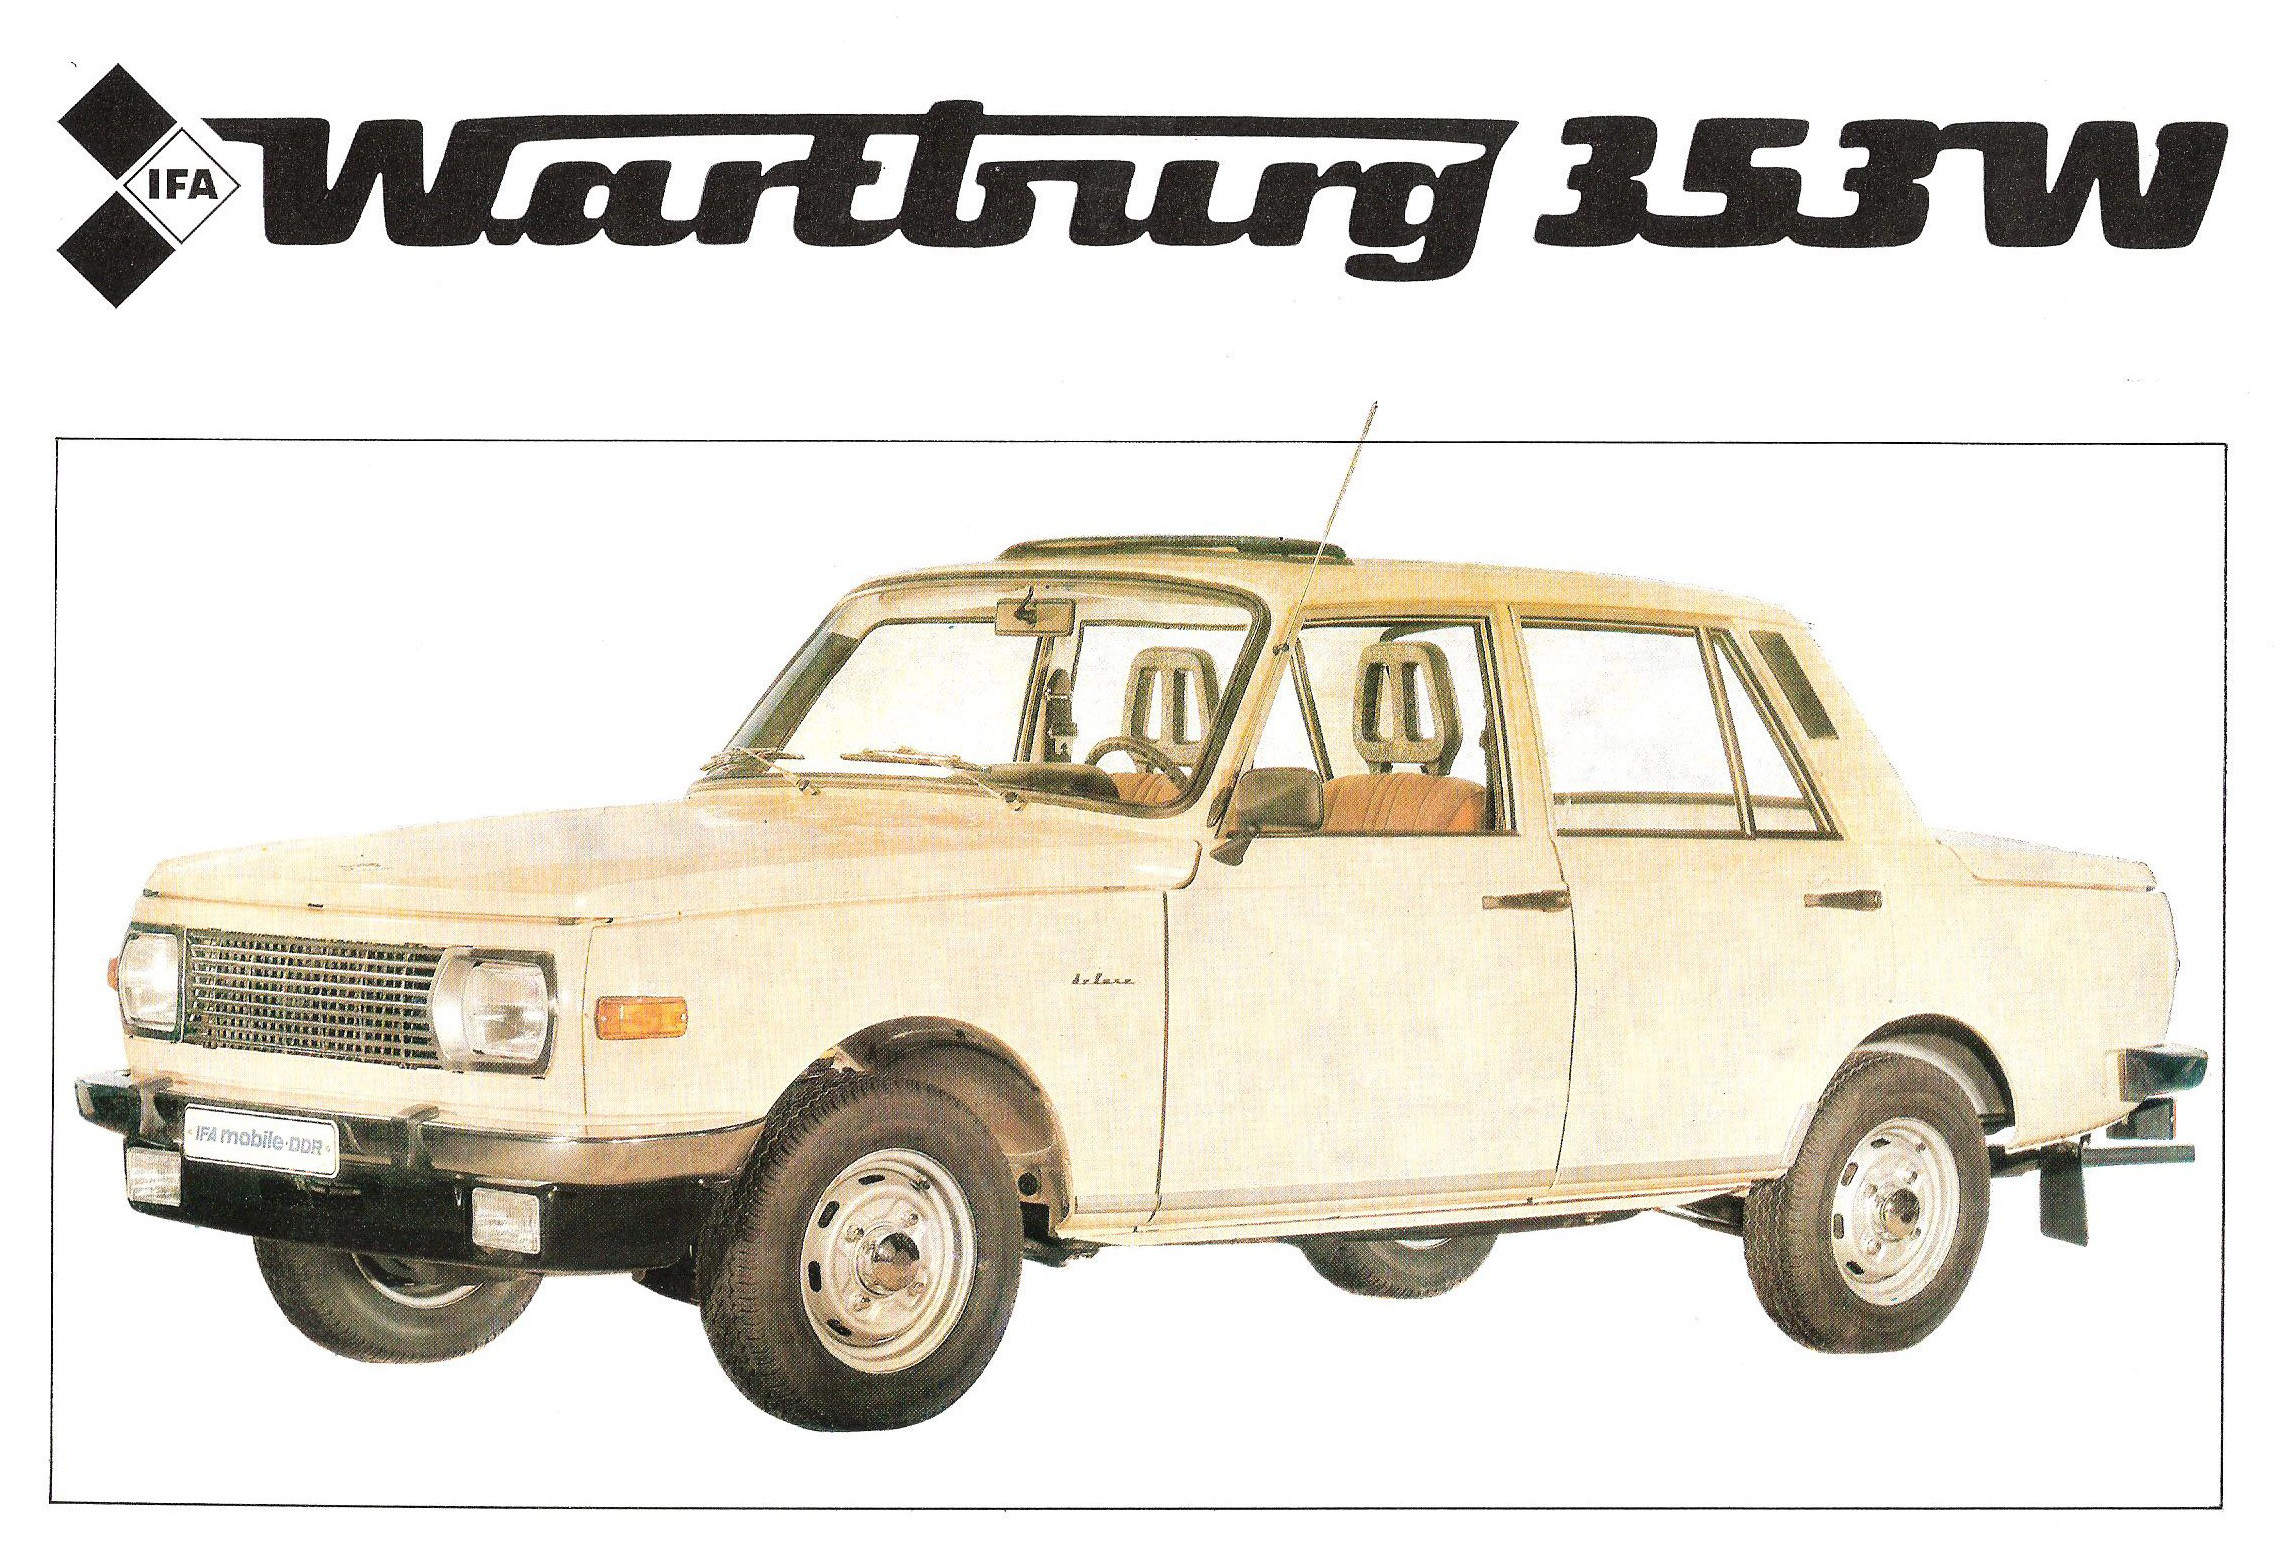 Wartburg 353w photo - 1